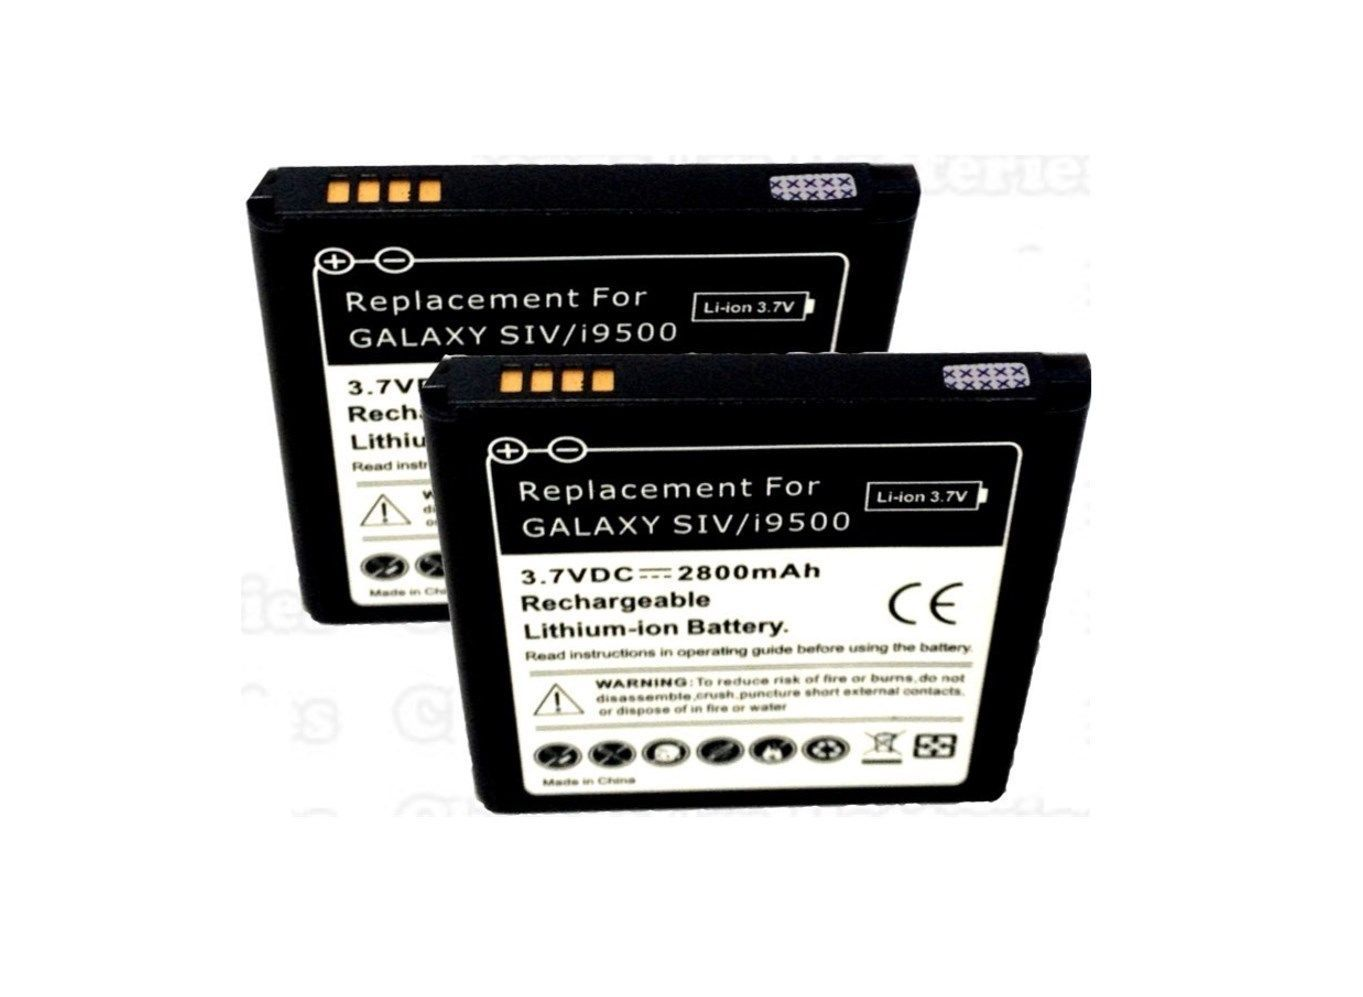 Samsung Galaxy S4 SCH-R970 2X Battery Spare S IV US Cellular Backup Replacement